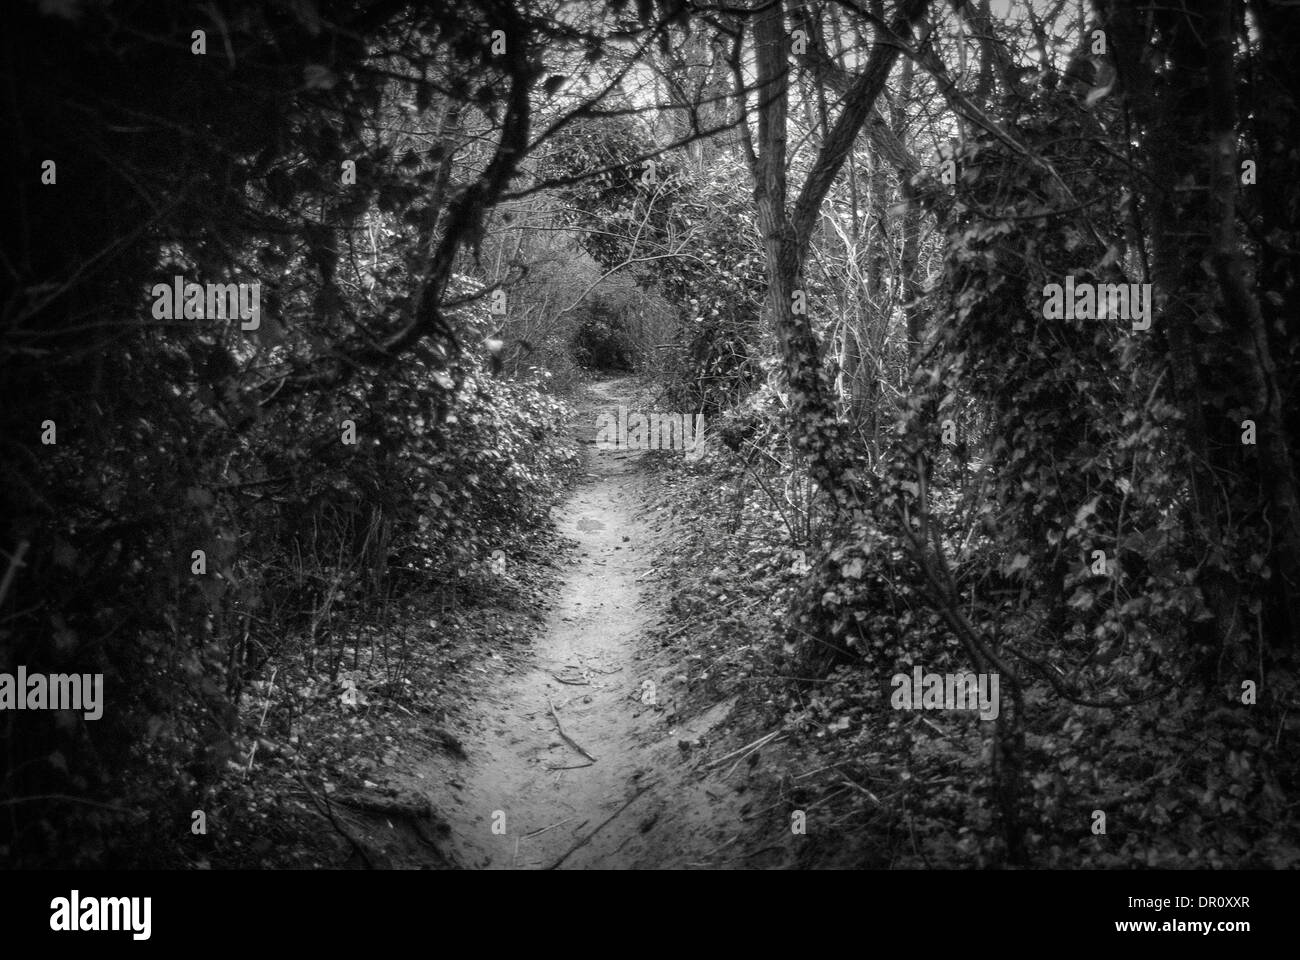 Photograph of walkway surrounded by trees  down at Bradlaugh Fields Northampton, Northamptonshire - Stock Image